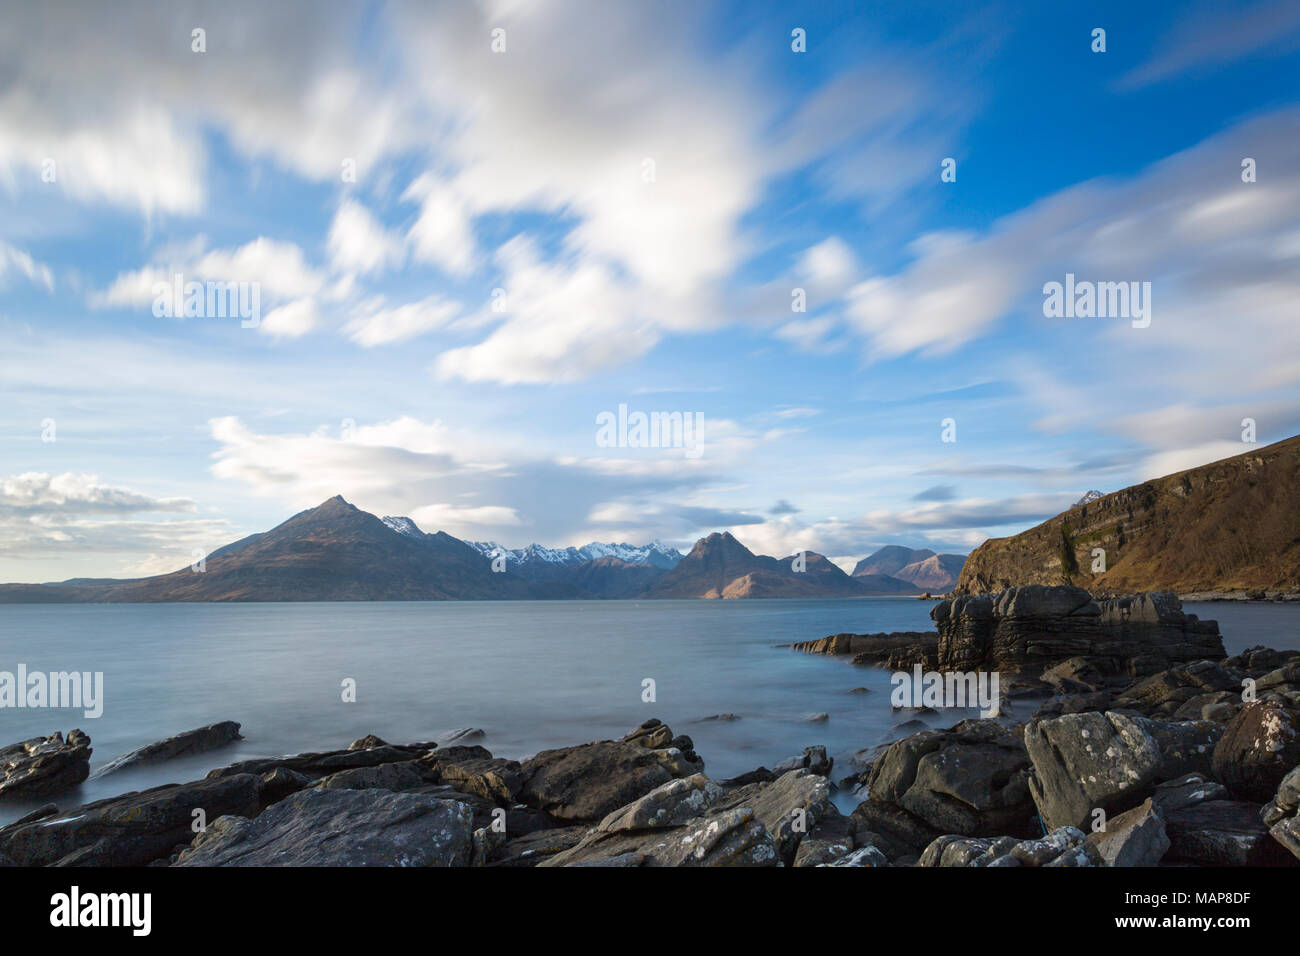 Elgol Beach and Black Cuillin hills on Isle of Skye, Scotland, UK in March - long exposure - Stock Image